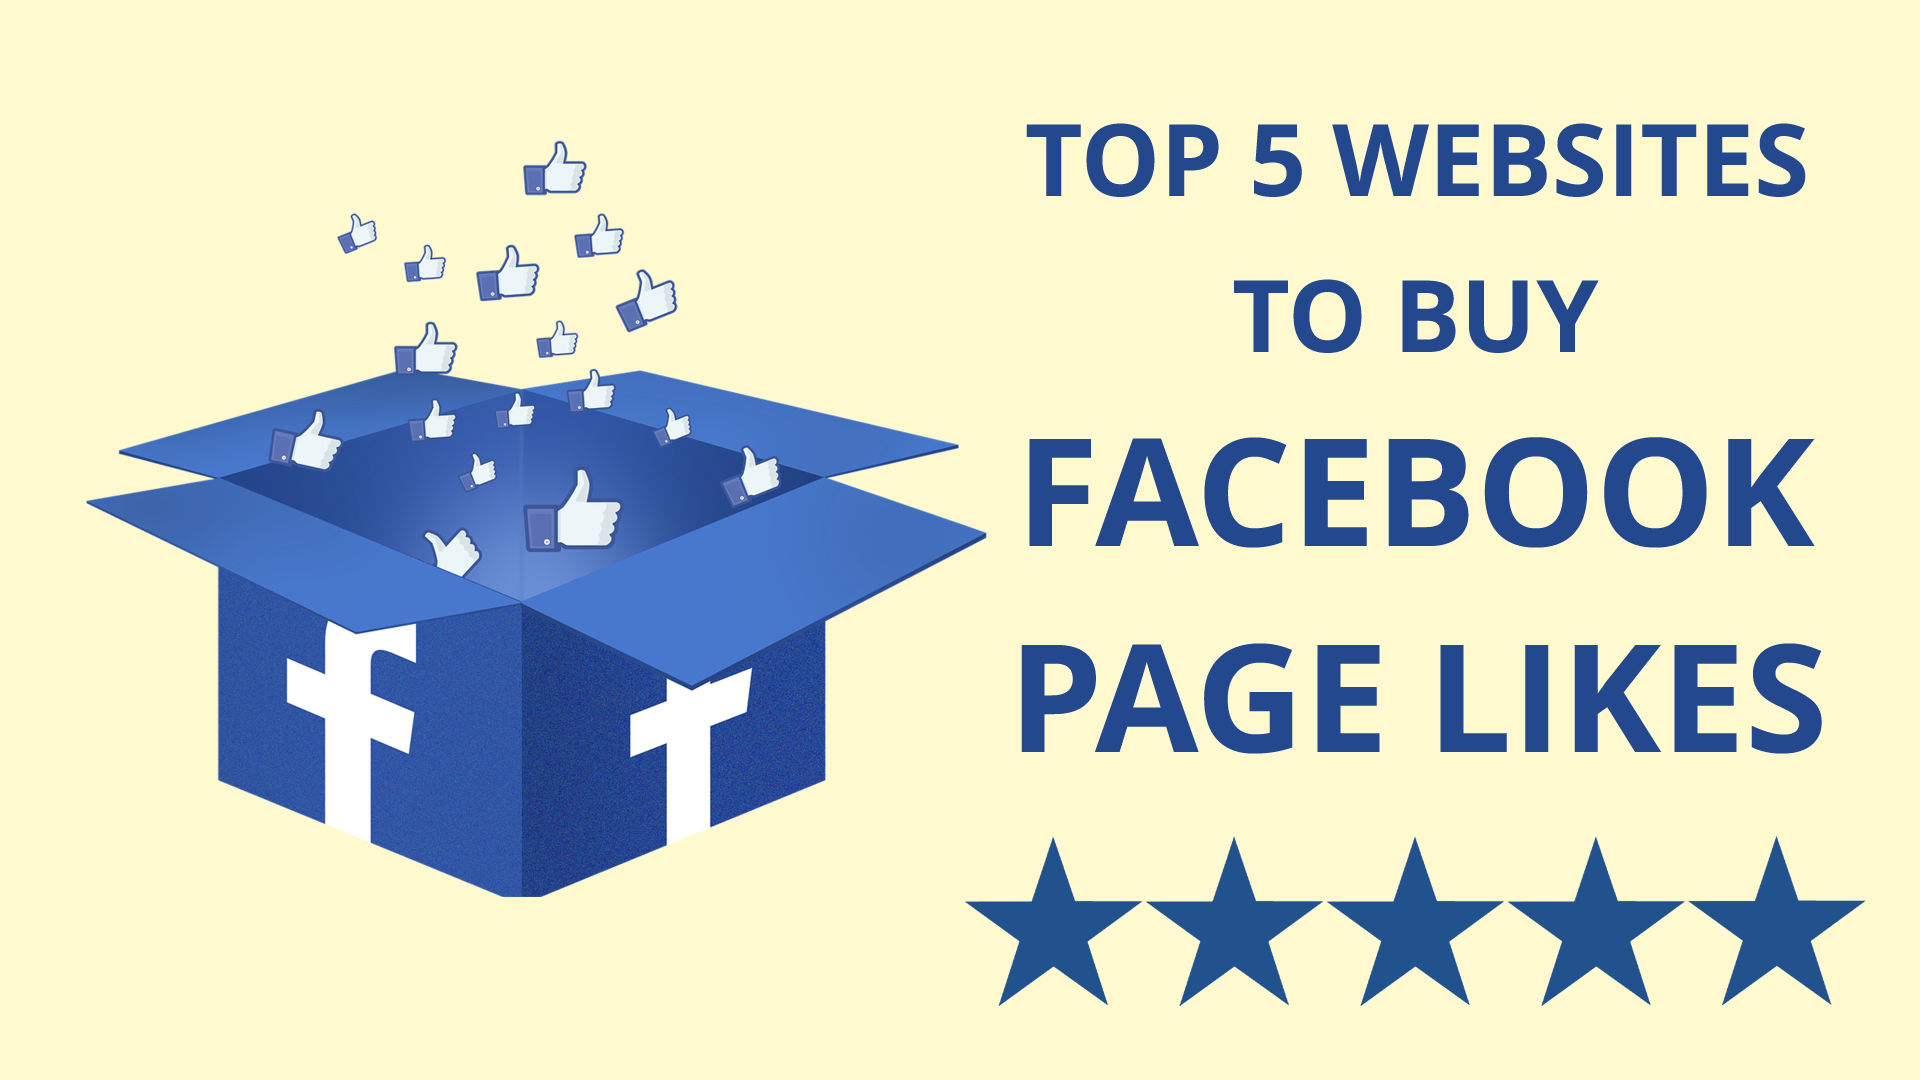 You can use the services of buying a Facebook page without any complications